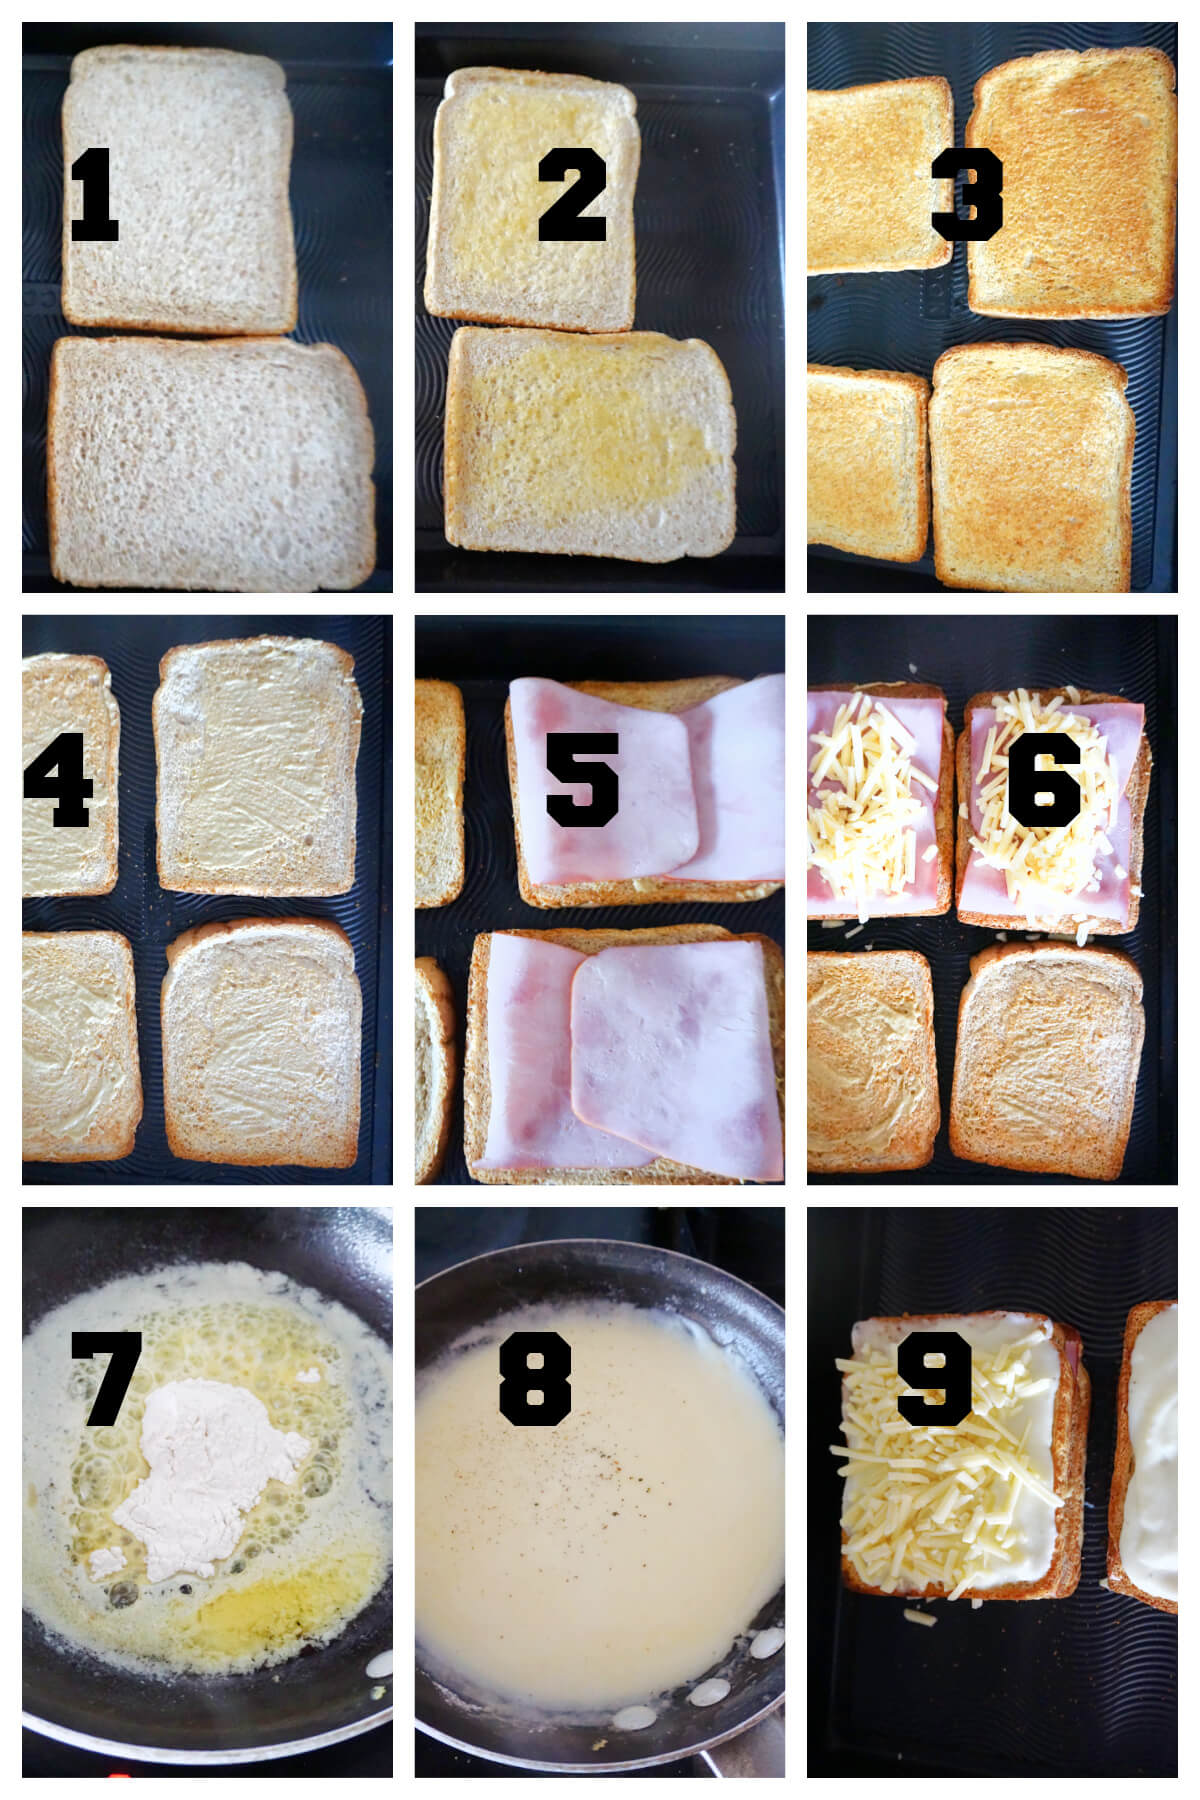 Collage of 9 images to show how to make croque monsieur